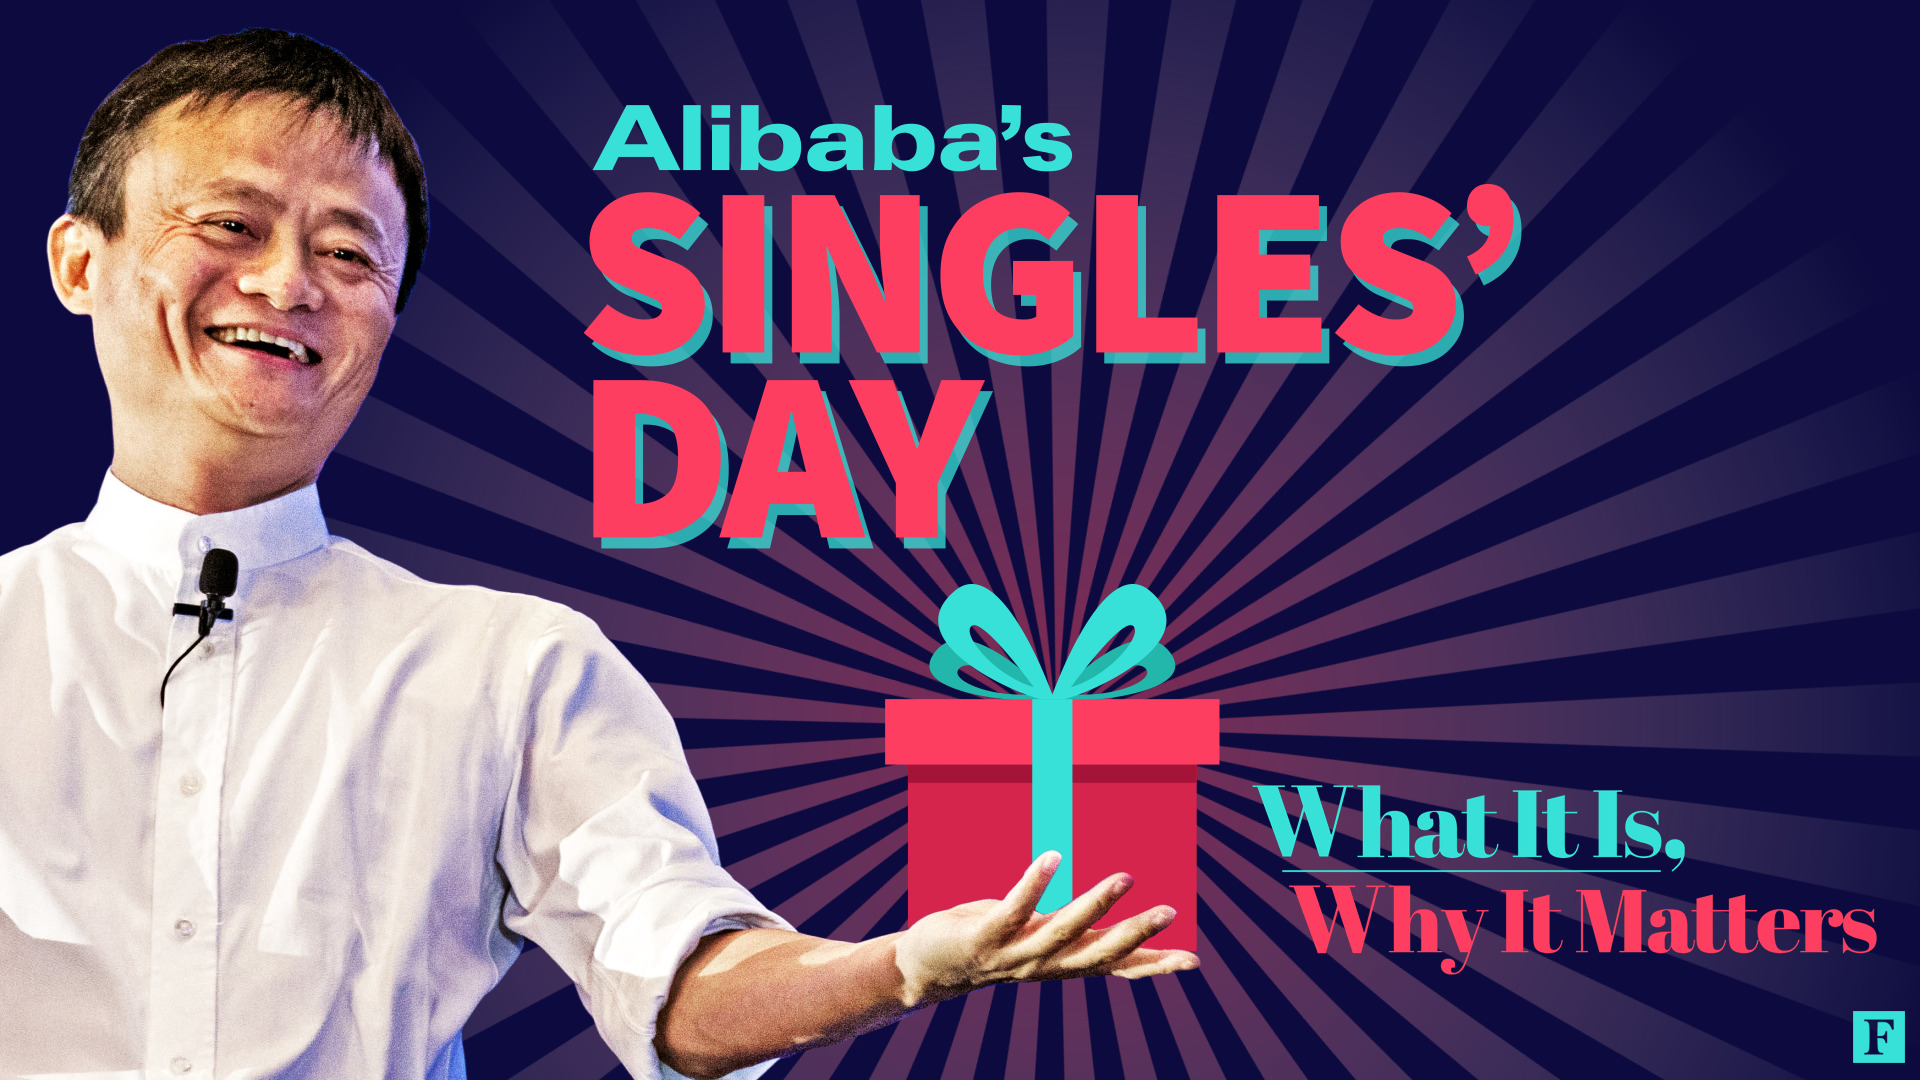 Singles Day made Alibaba 25 billion in largest shopping holiday Singles Day made Alibaba 25 billion in largest shopping holiday new images